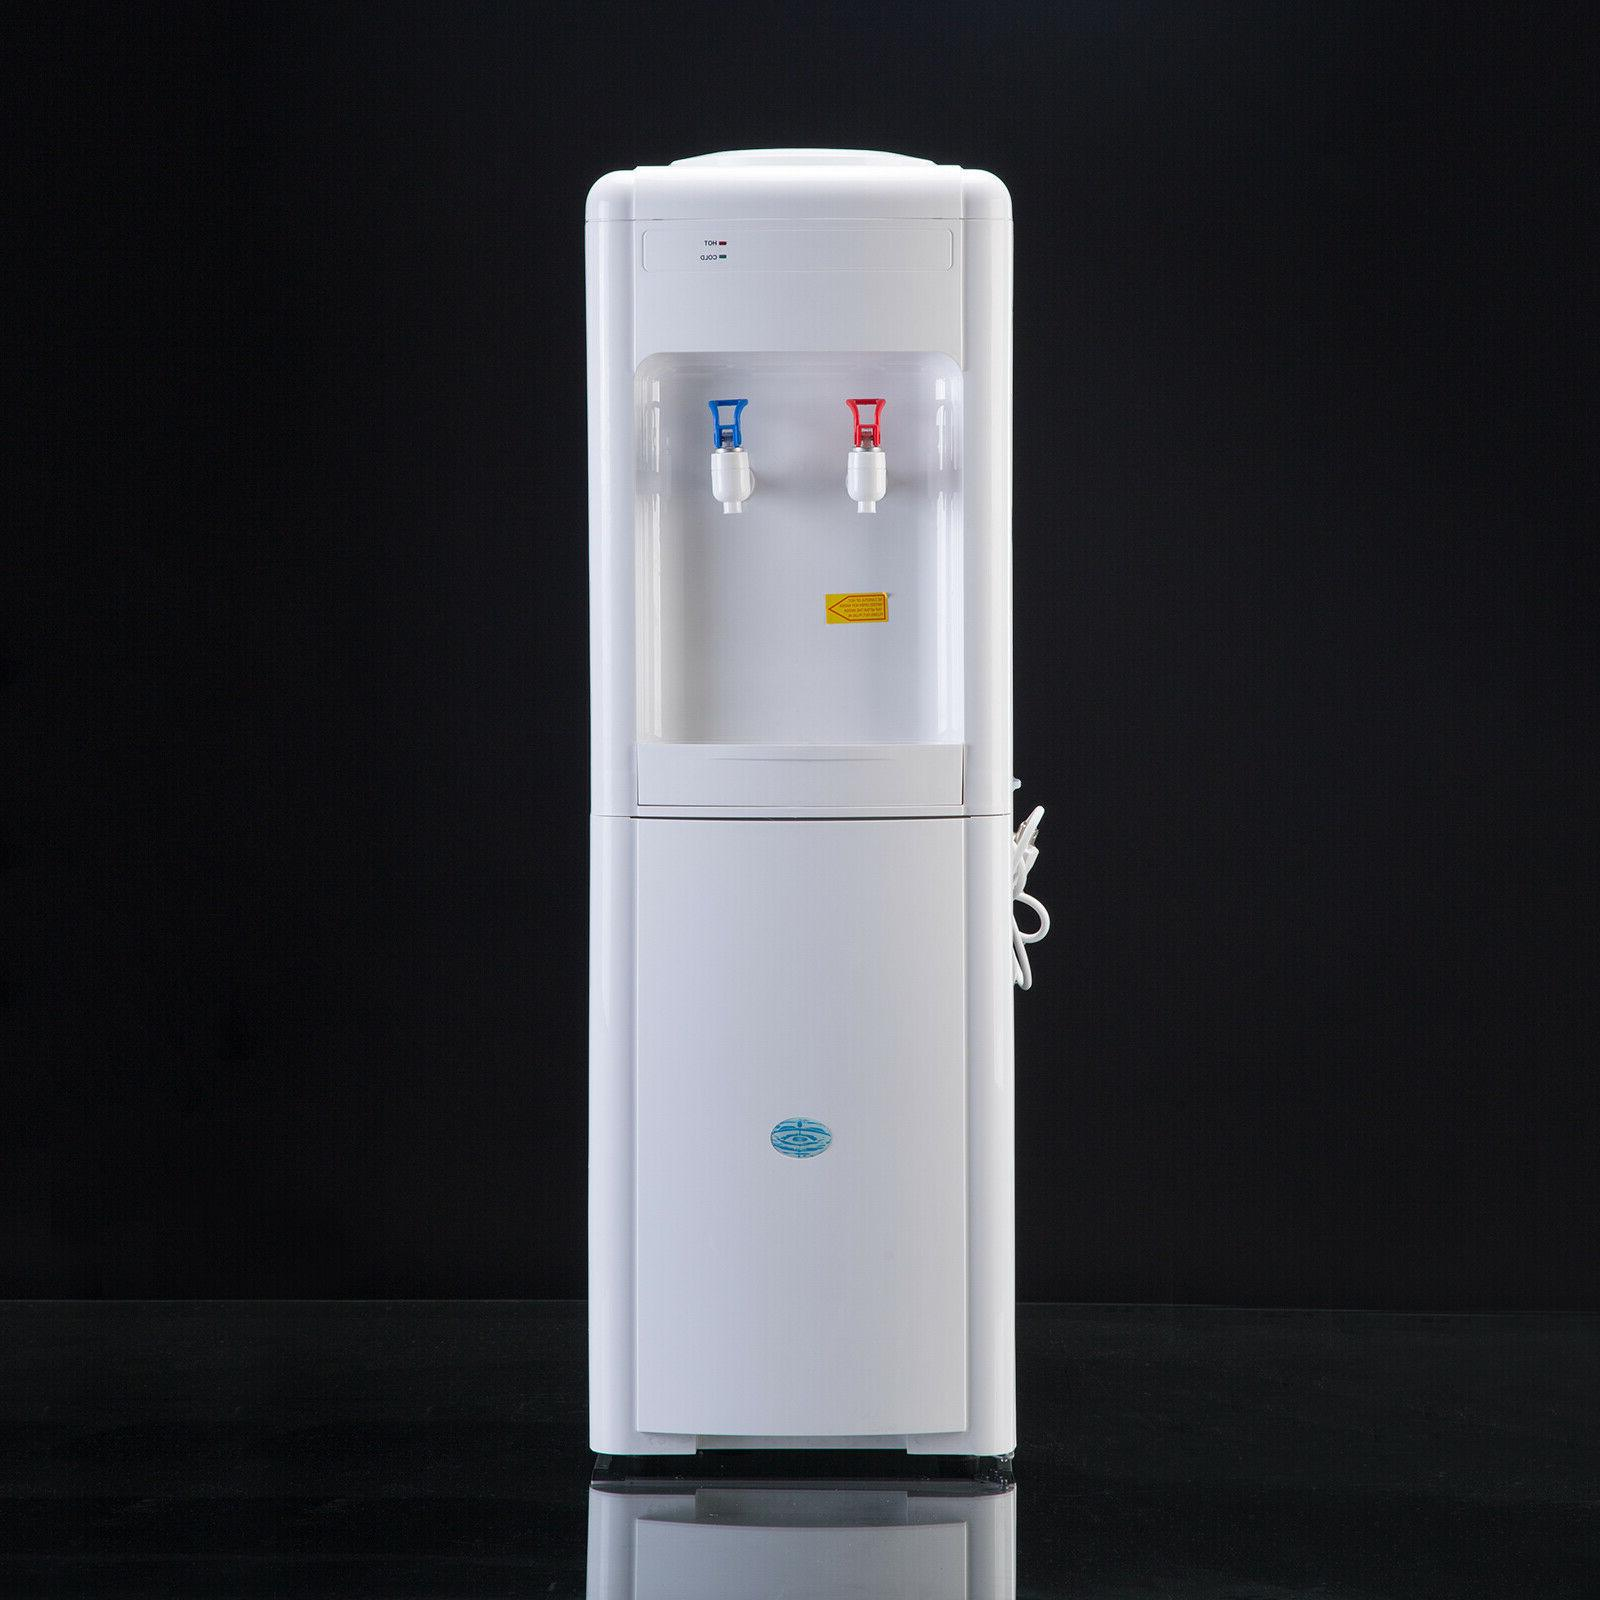 Water Dispenser Top Loading 5 Gallon Electric Hot/Cold White